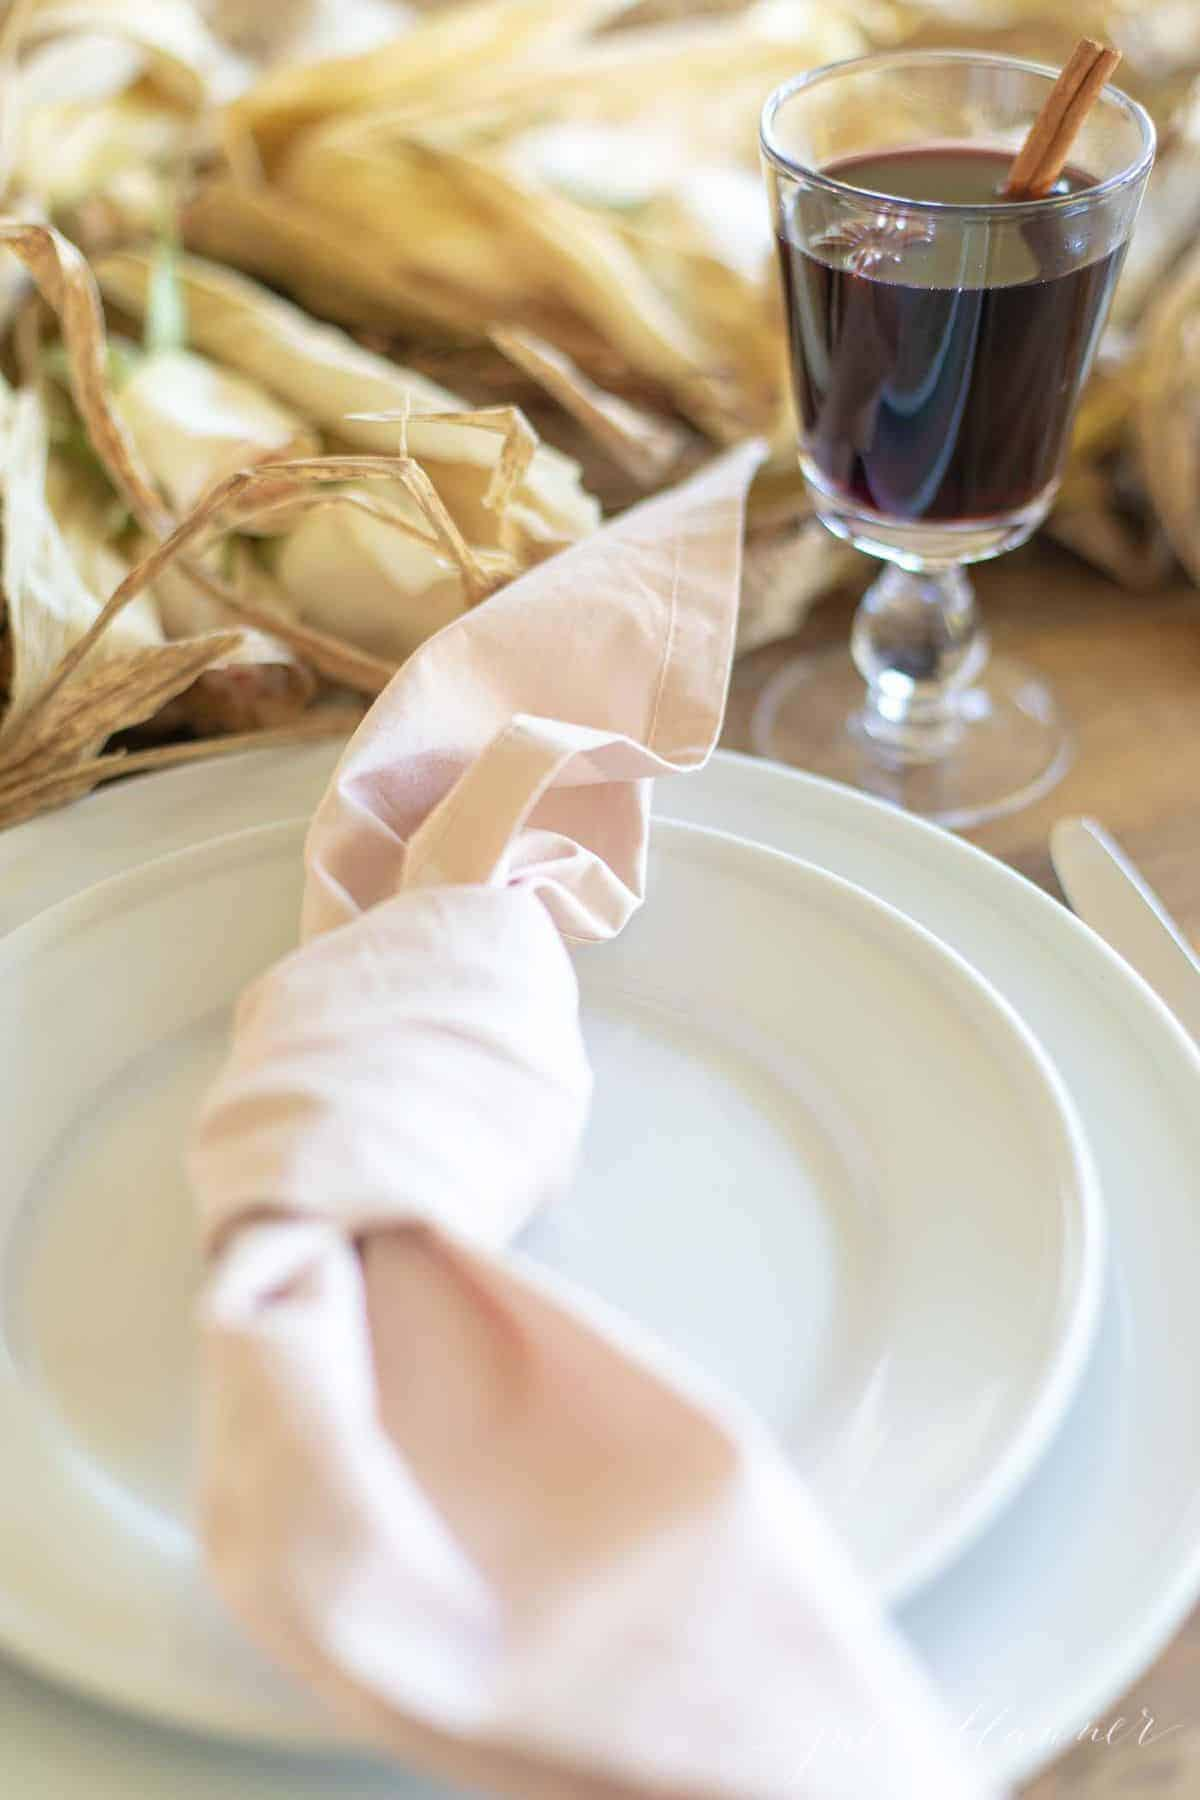 White plates on a fall table, pink napkin tied on plate, mulled wine in the background.